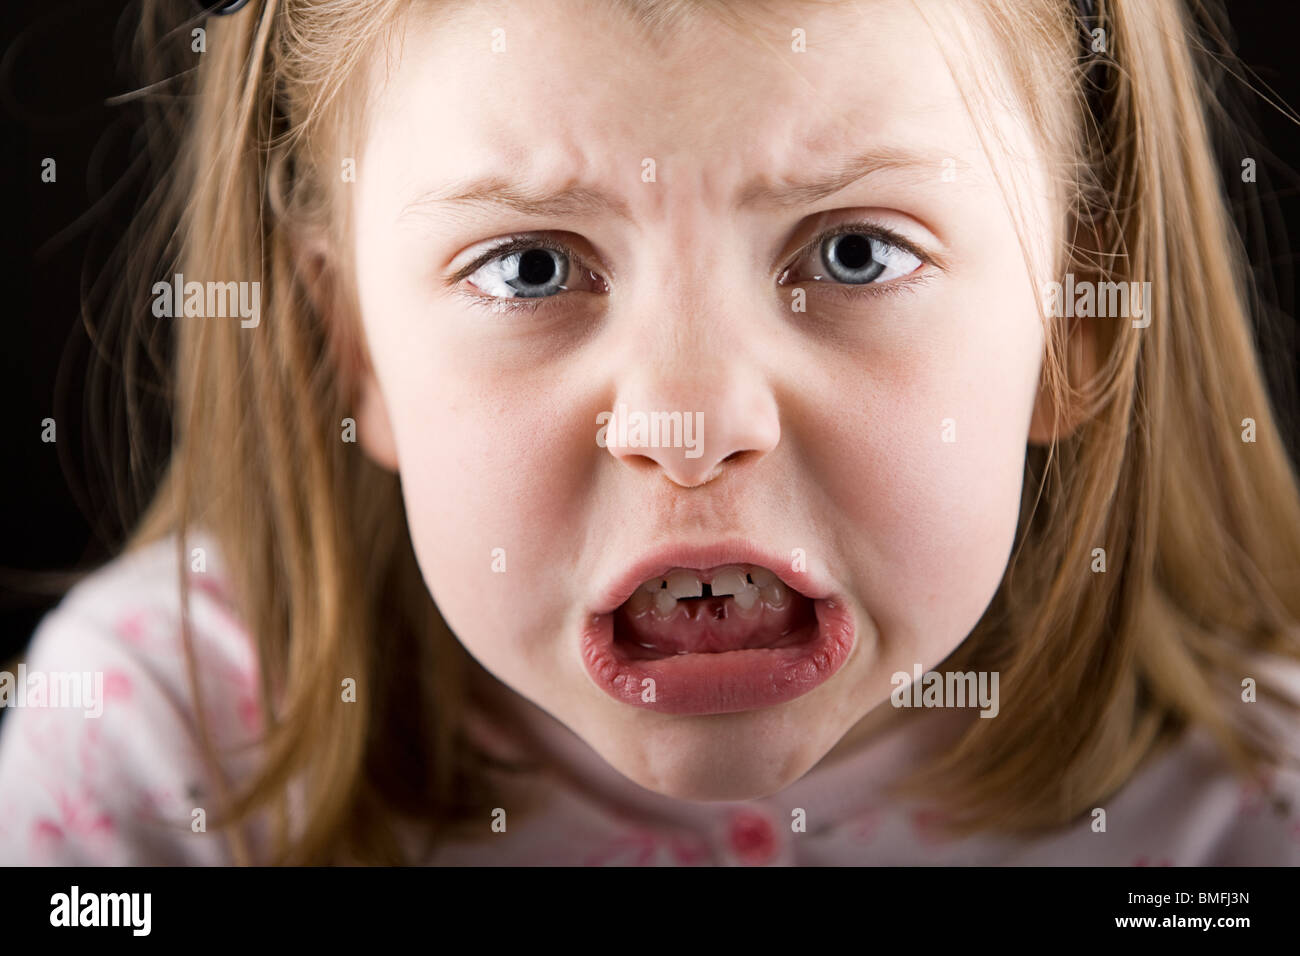 Shot of an Upset Child with Gaps in her Teeth - Stock Image